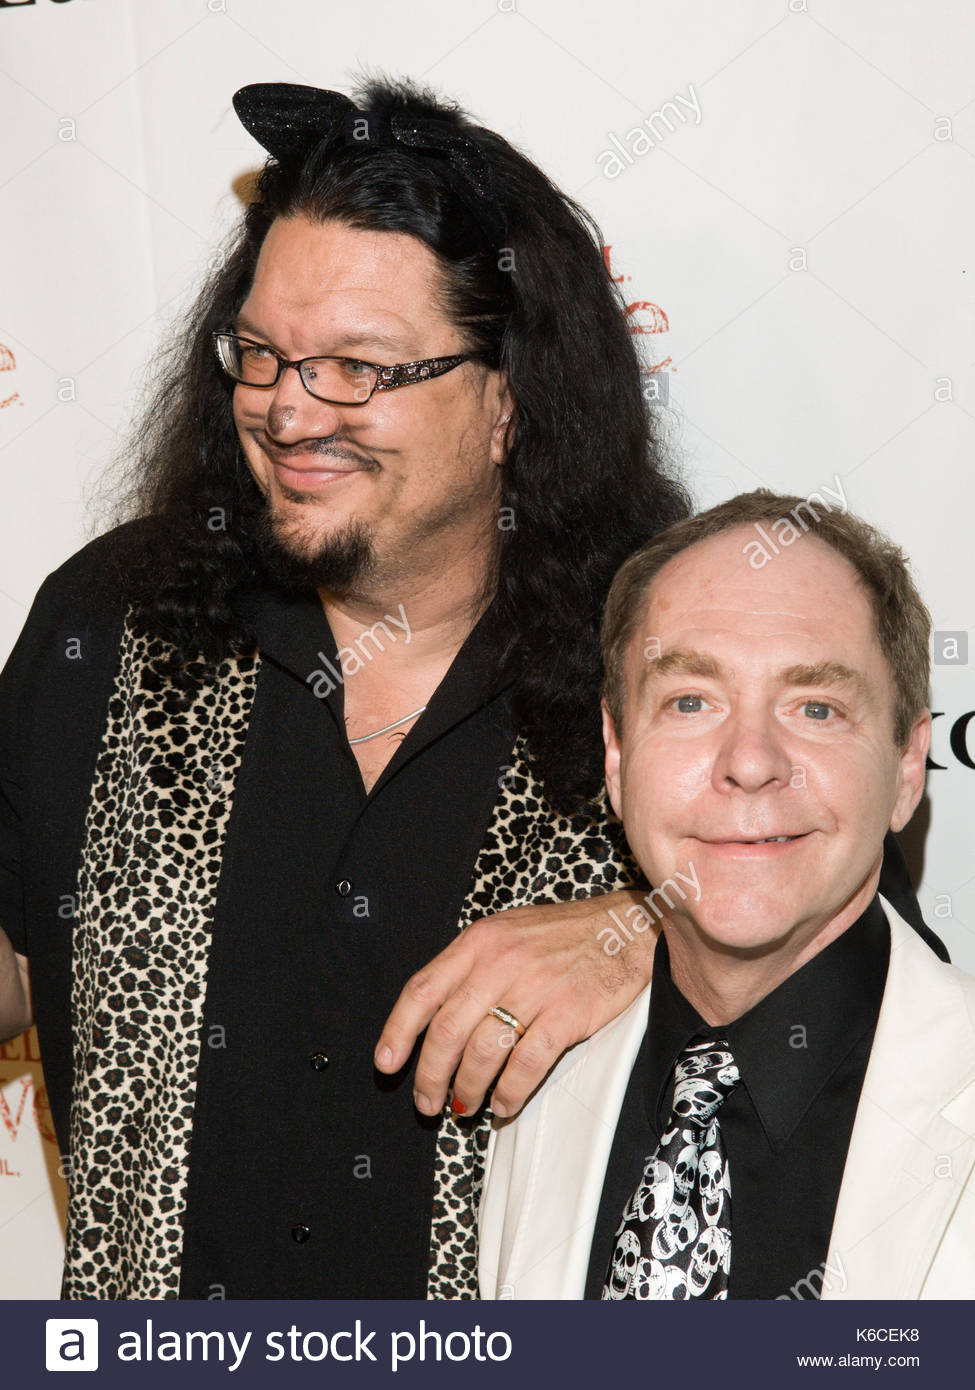 penn jillette, teller. penn jillette, teller arriving for the stock